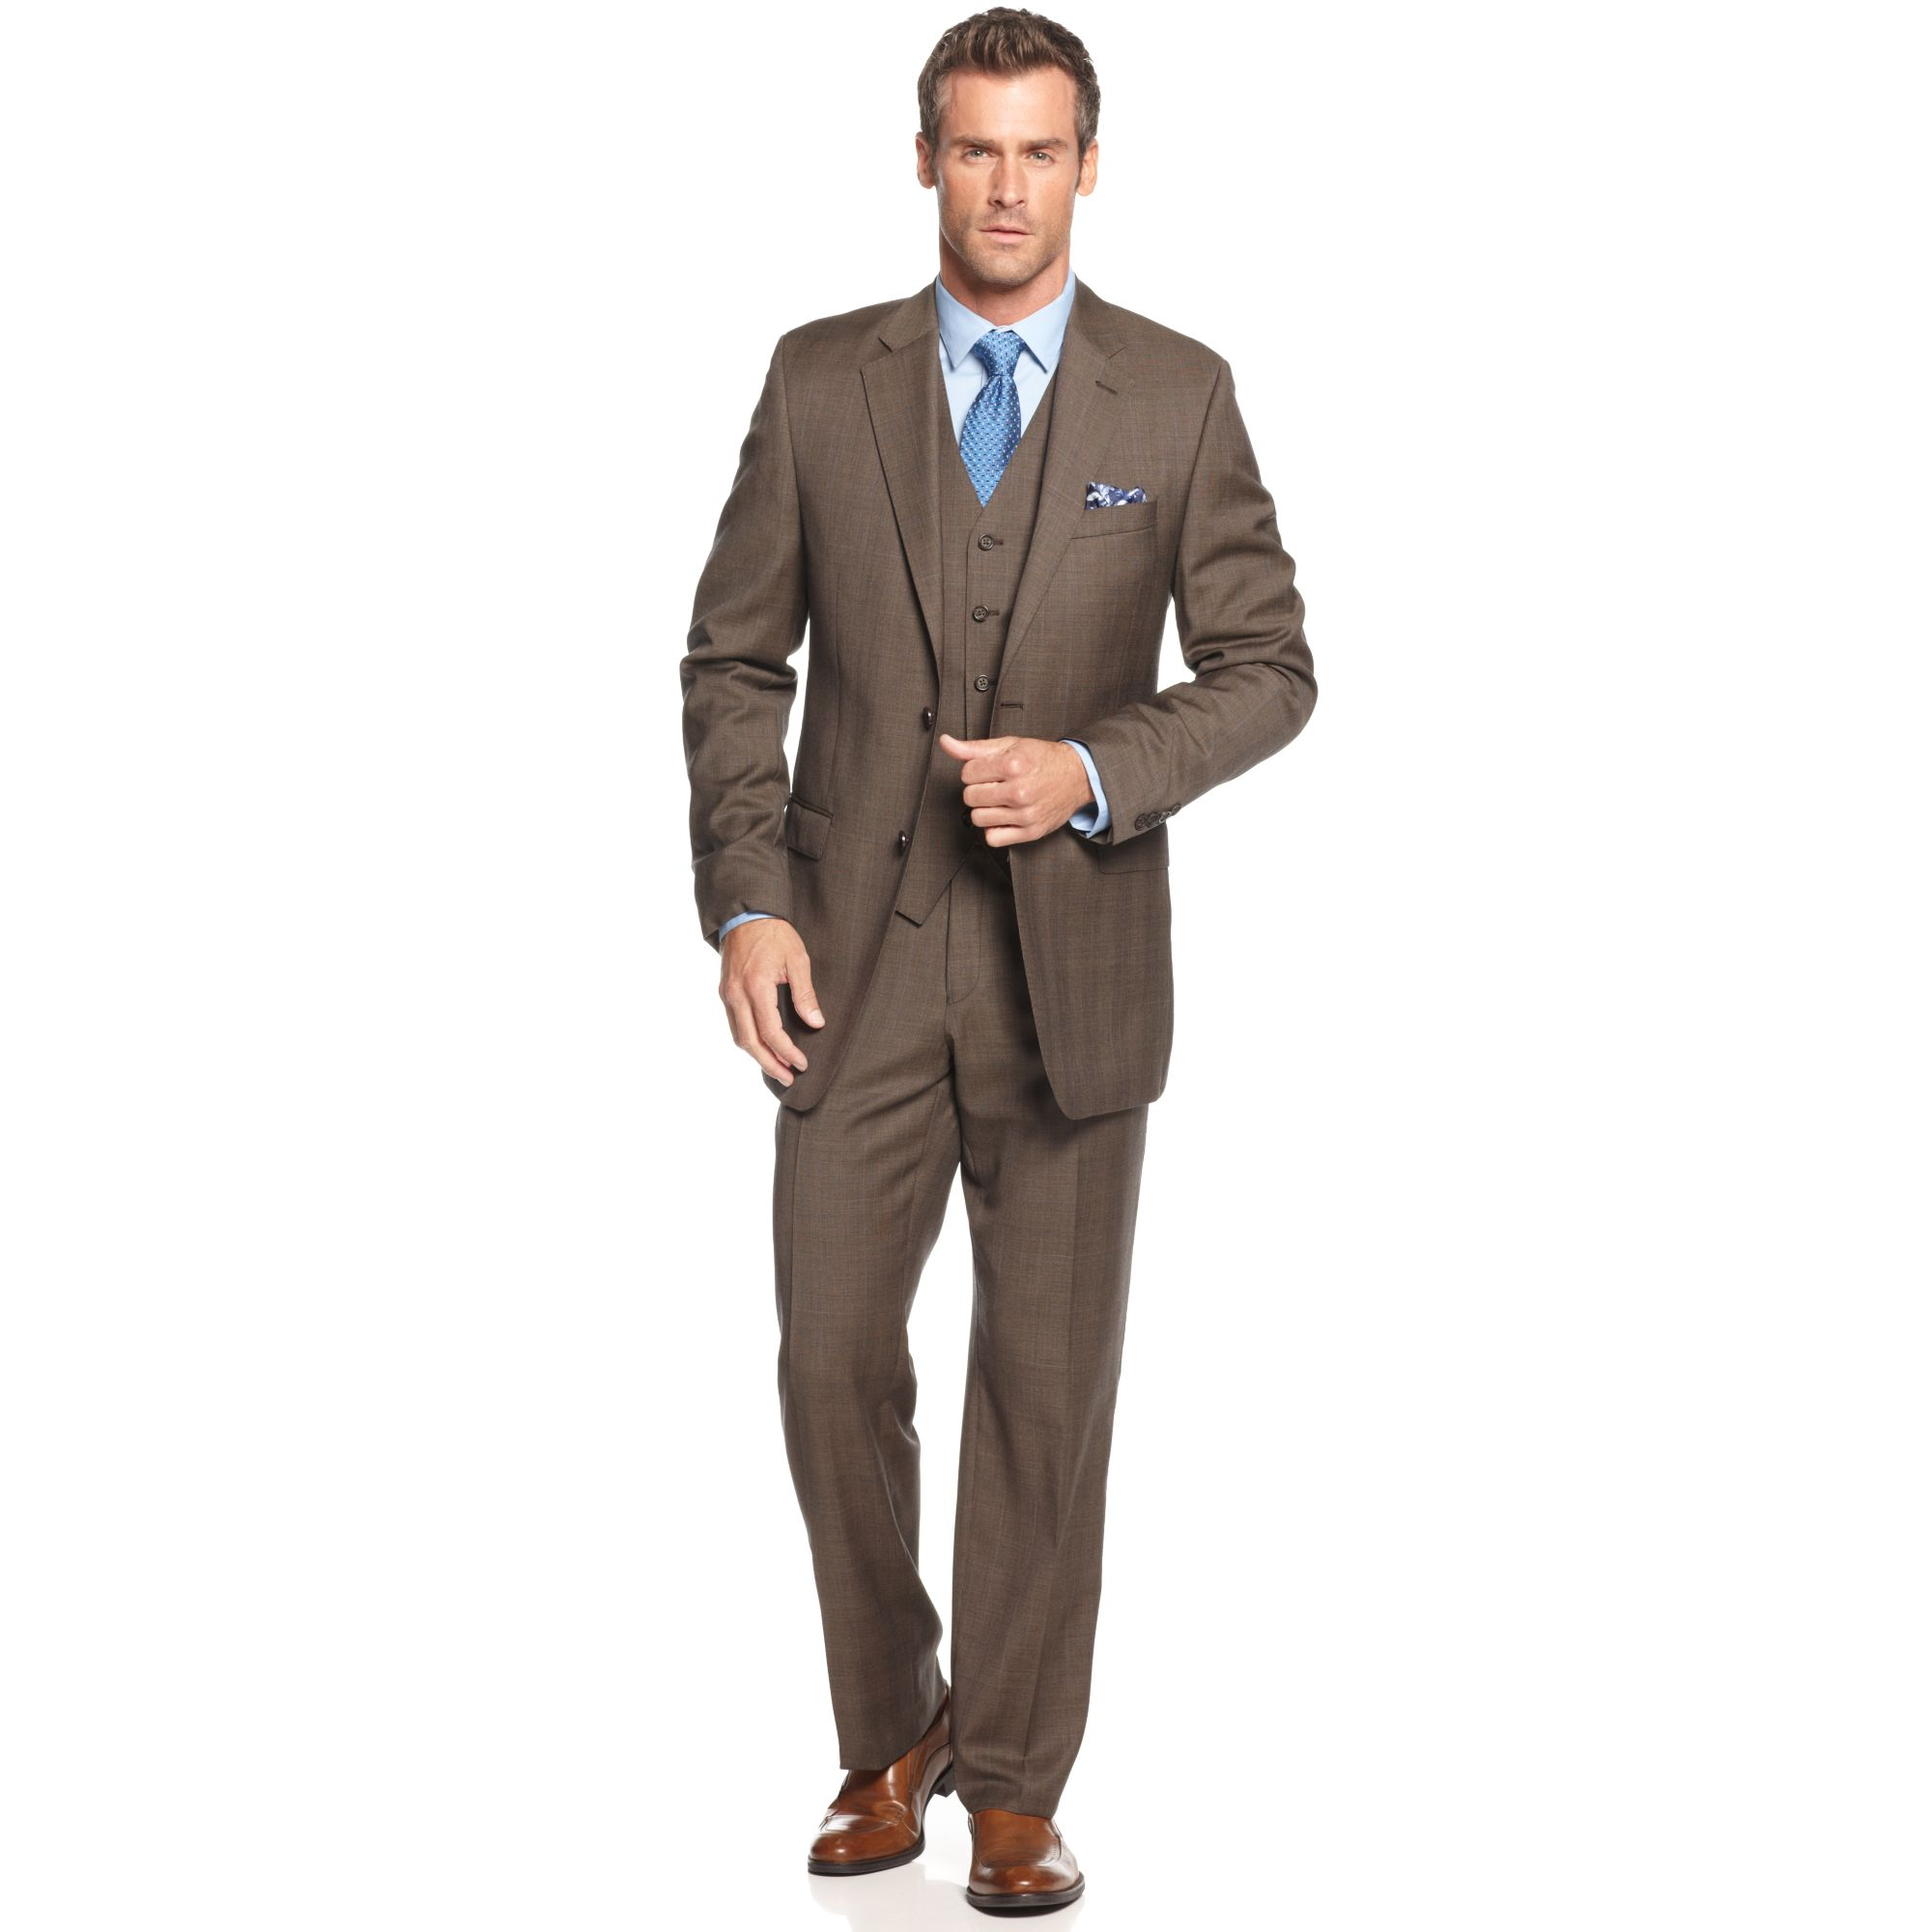 Lauren by ralph lauren Lauren By Ralph Lauren Suit Brown Plaid ...